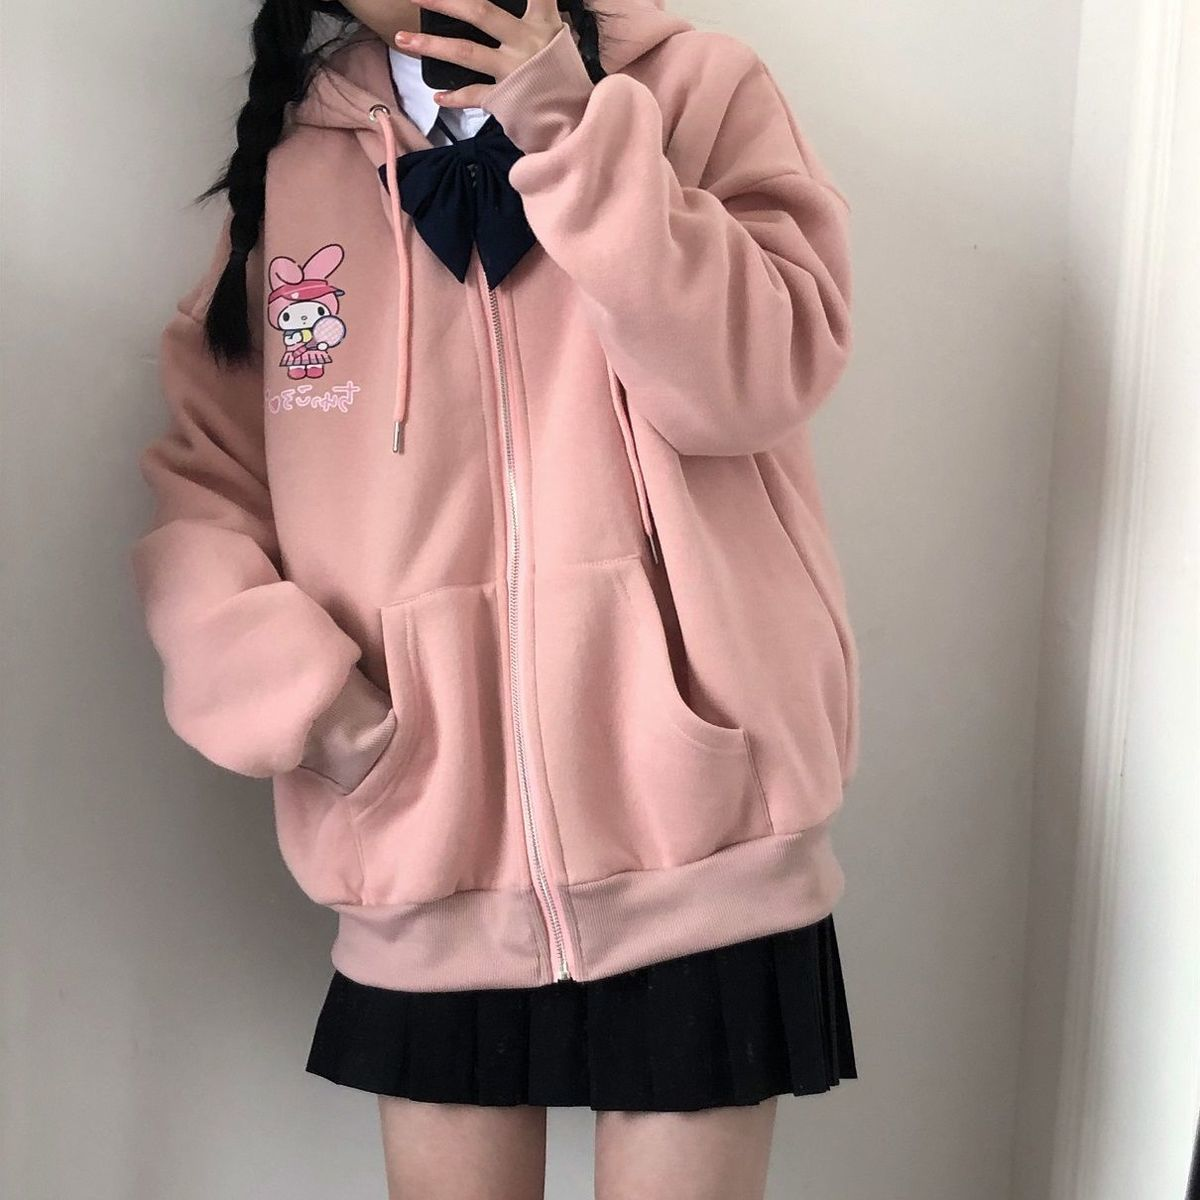 KAWAII ANIME PRINT HOODIE - Cosmique Studio - Aesthetic Outfits